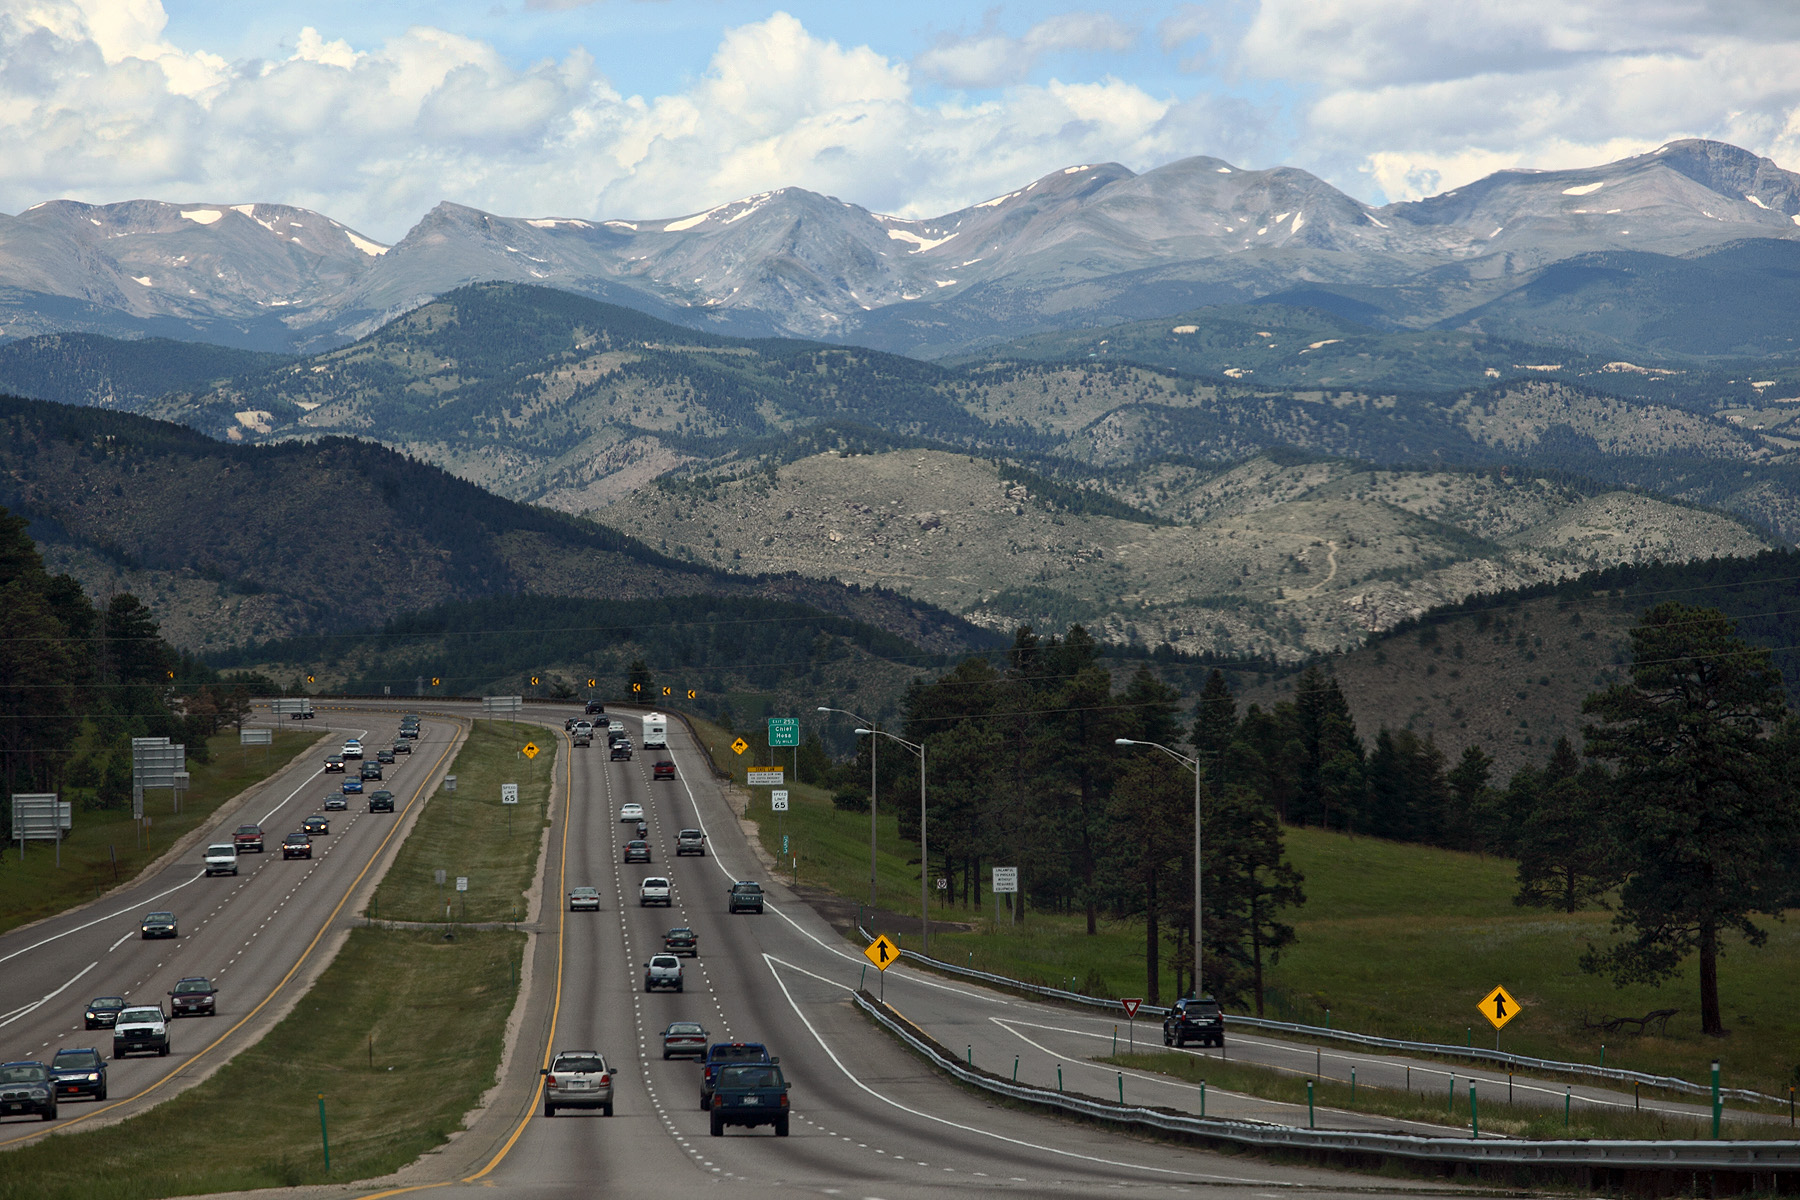 Rocky Mountains, I-70 West of Denver | Flickr - Photo Sharing!